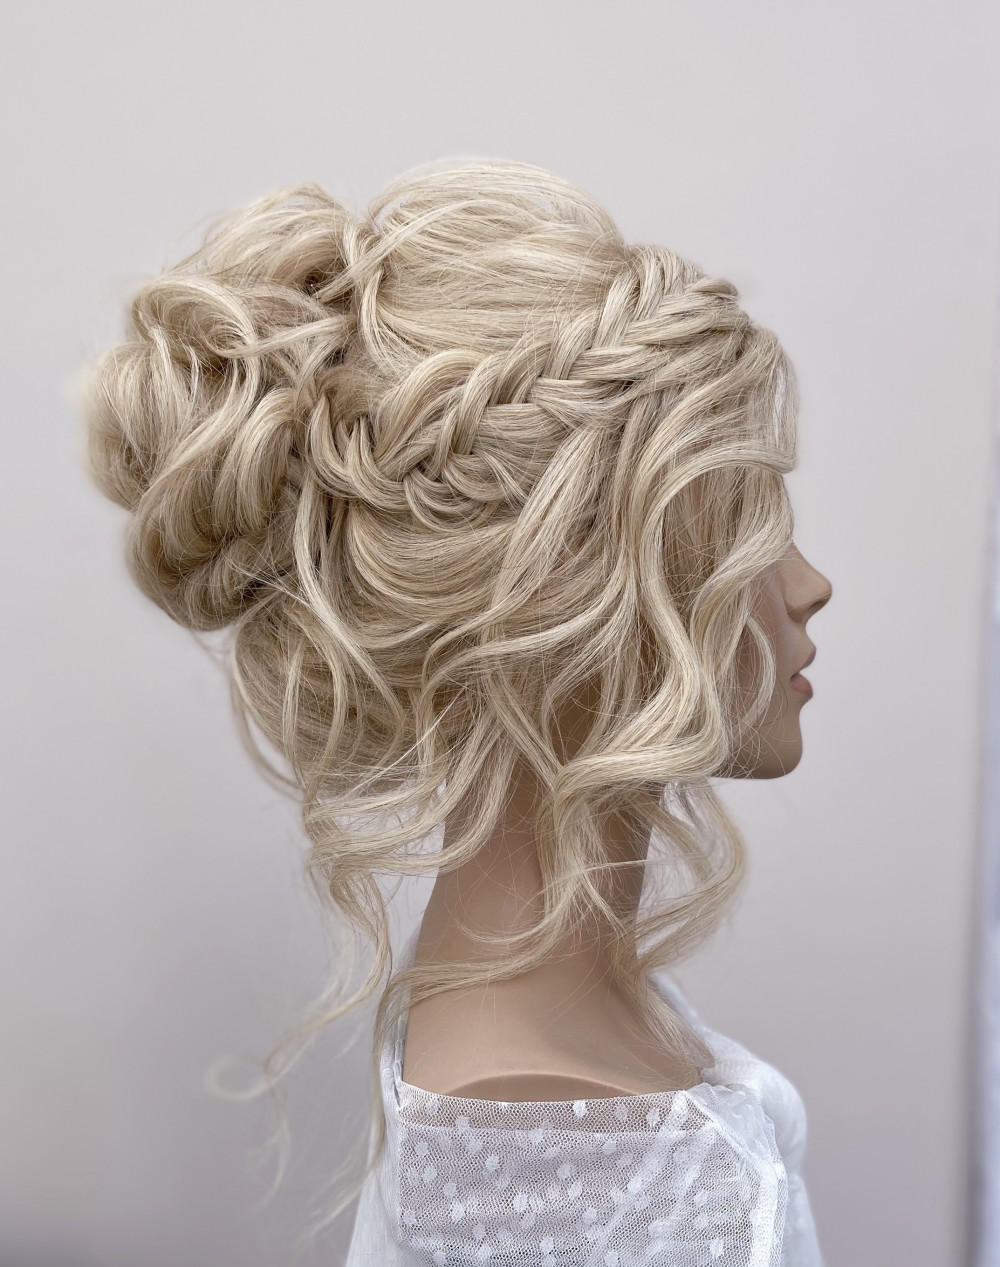 - Make Me Bridal Artist: Bridal hair by Michelle Jewess. Photography by: Michelle. #glamorous #curls #blonde #updo #weddinghair #texturedupdo #texturedupdo